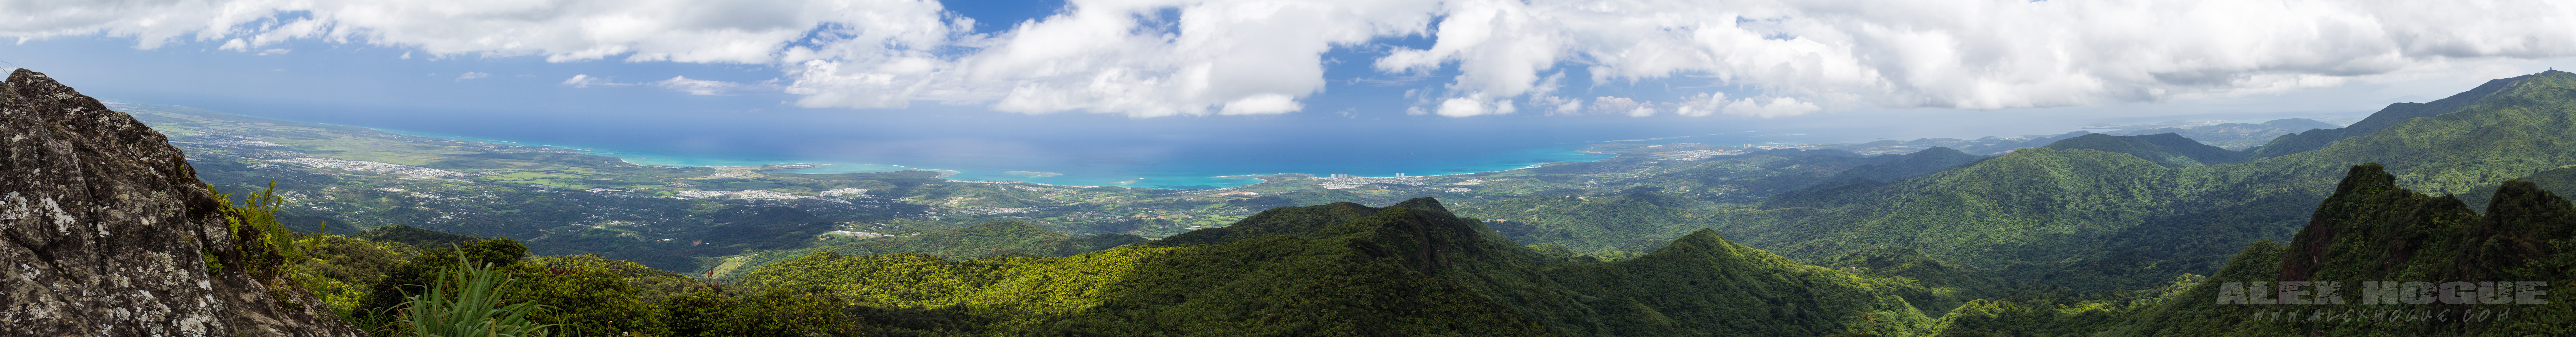 Panoramic view of El Yunque rainforest puerto rico by Alex Hogue